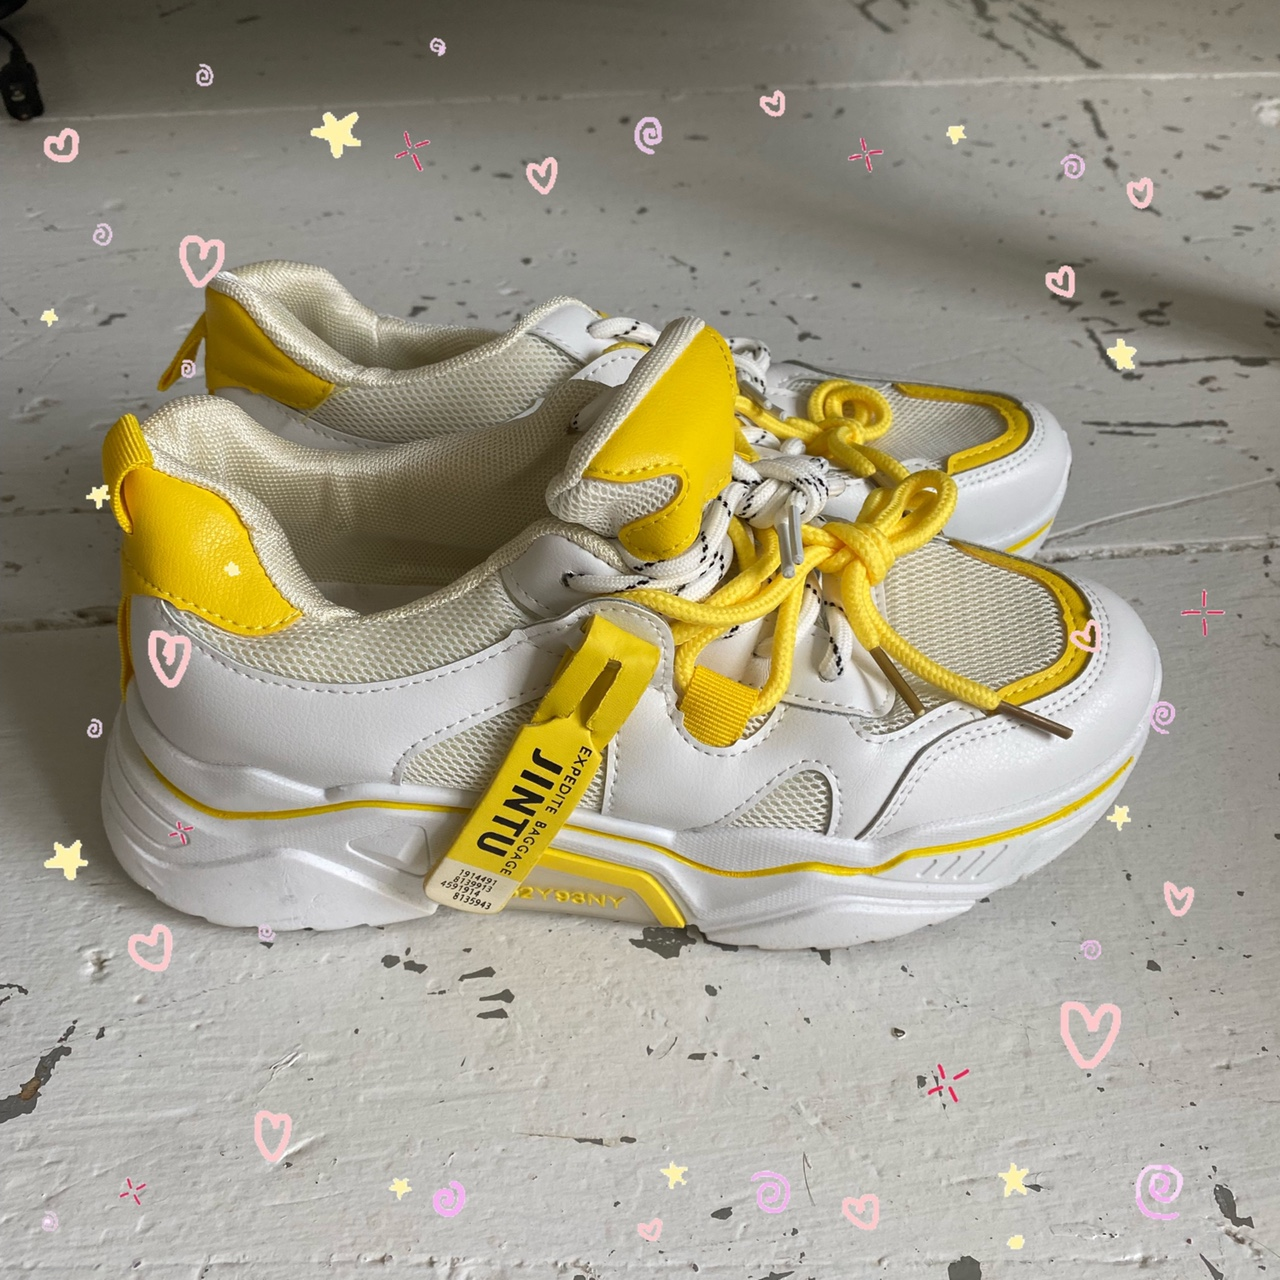 Product Image 1 - ☀️CHUNKY YELLOW AND WHITE SNEAKERS☀️  ▪️Only